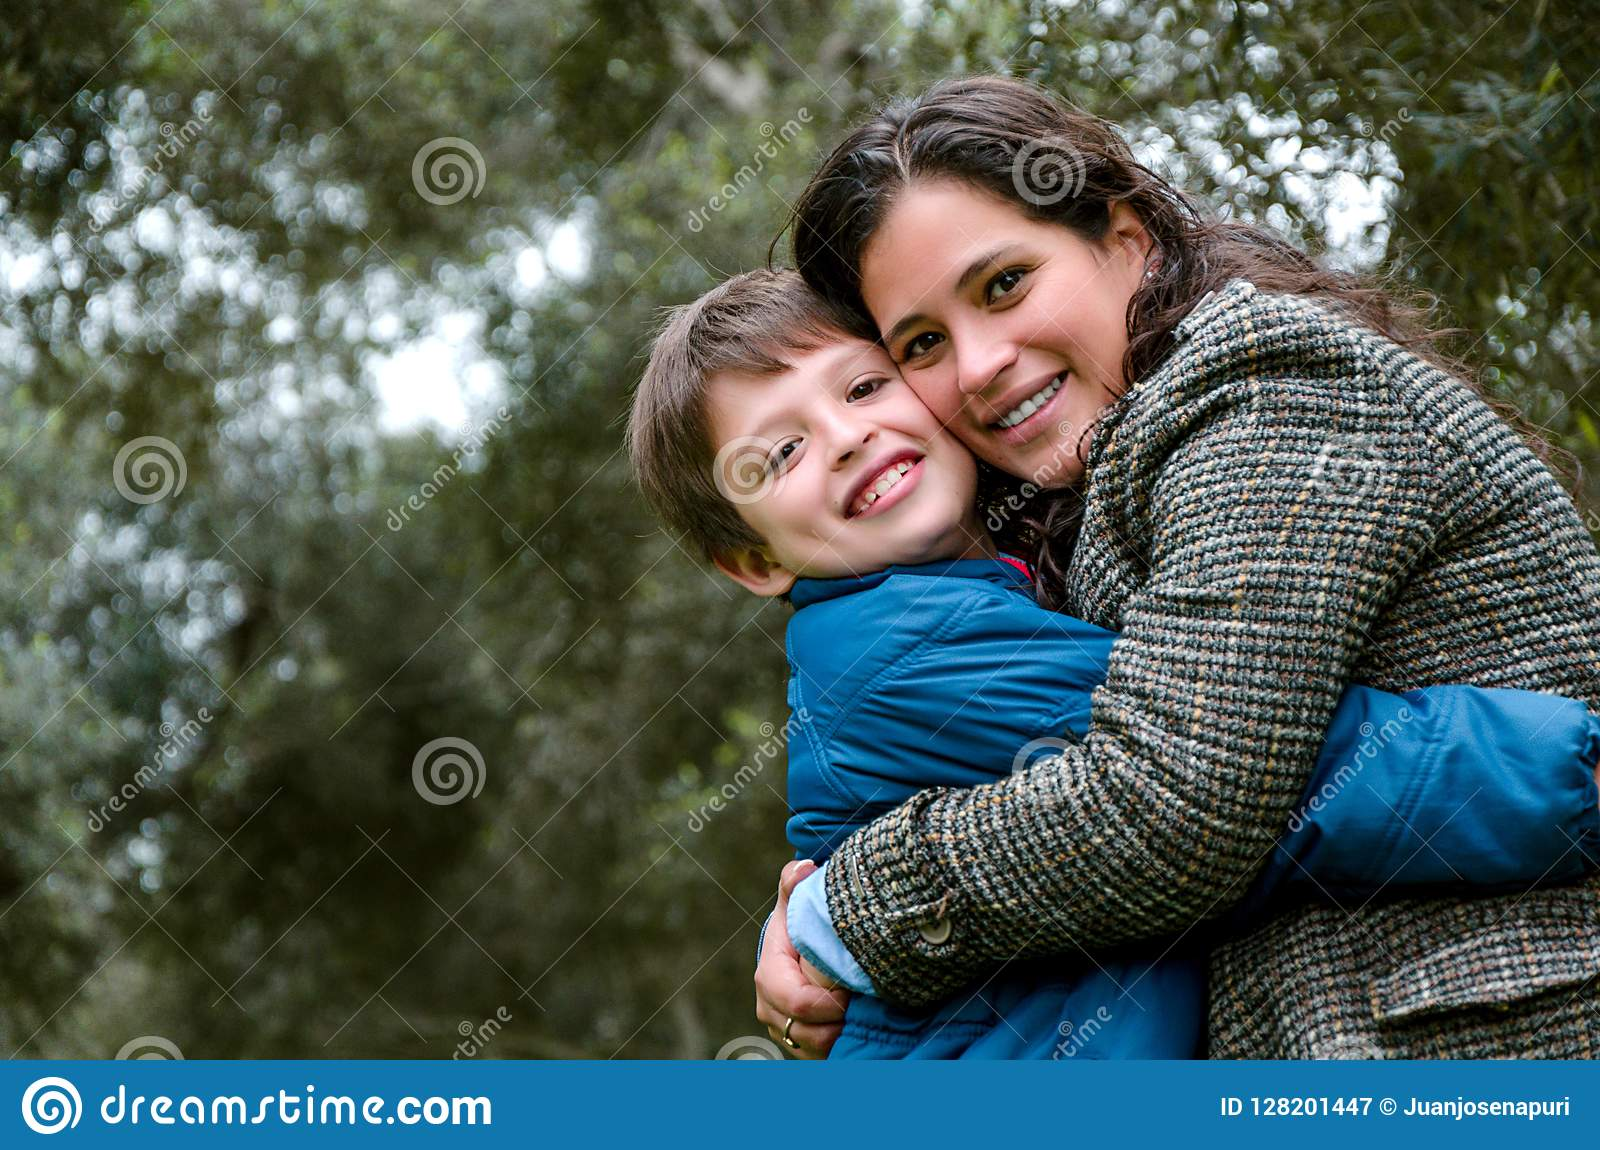 Portrait of a mother with her son teenager. Tenderness, love.